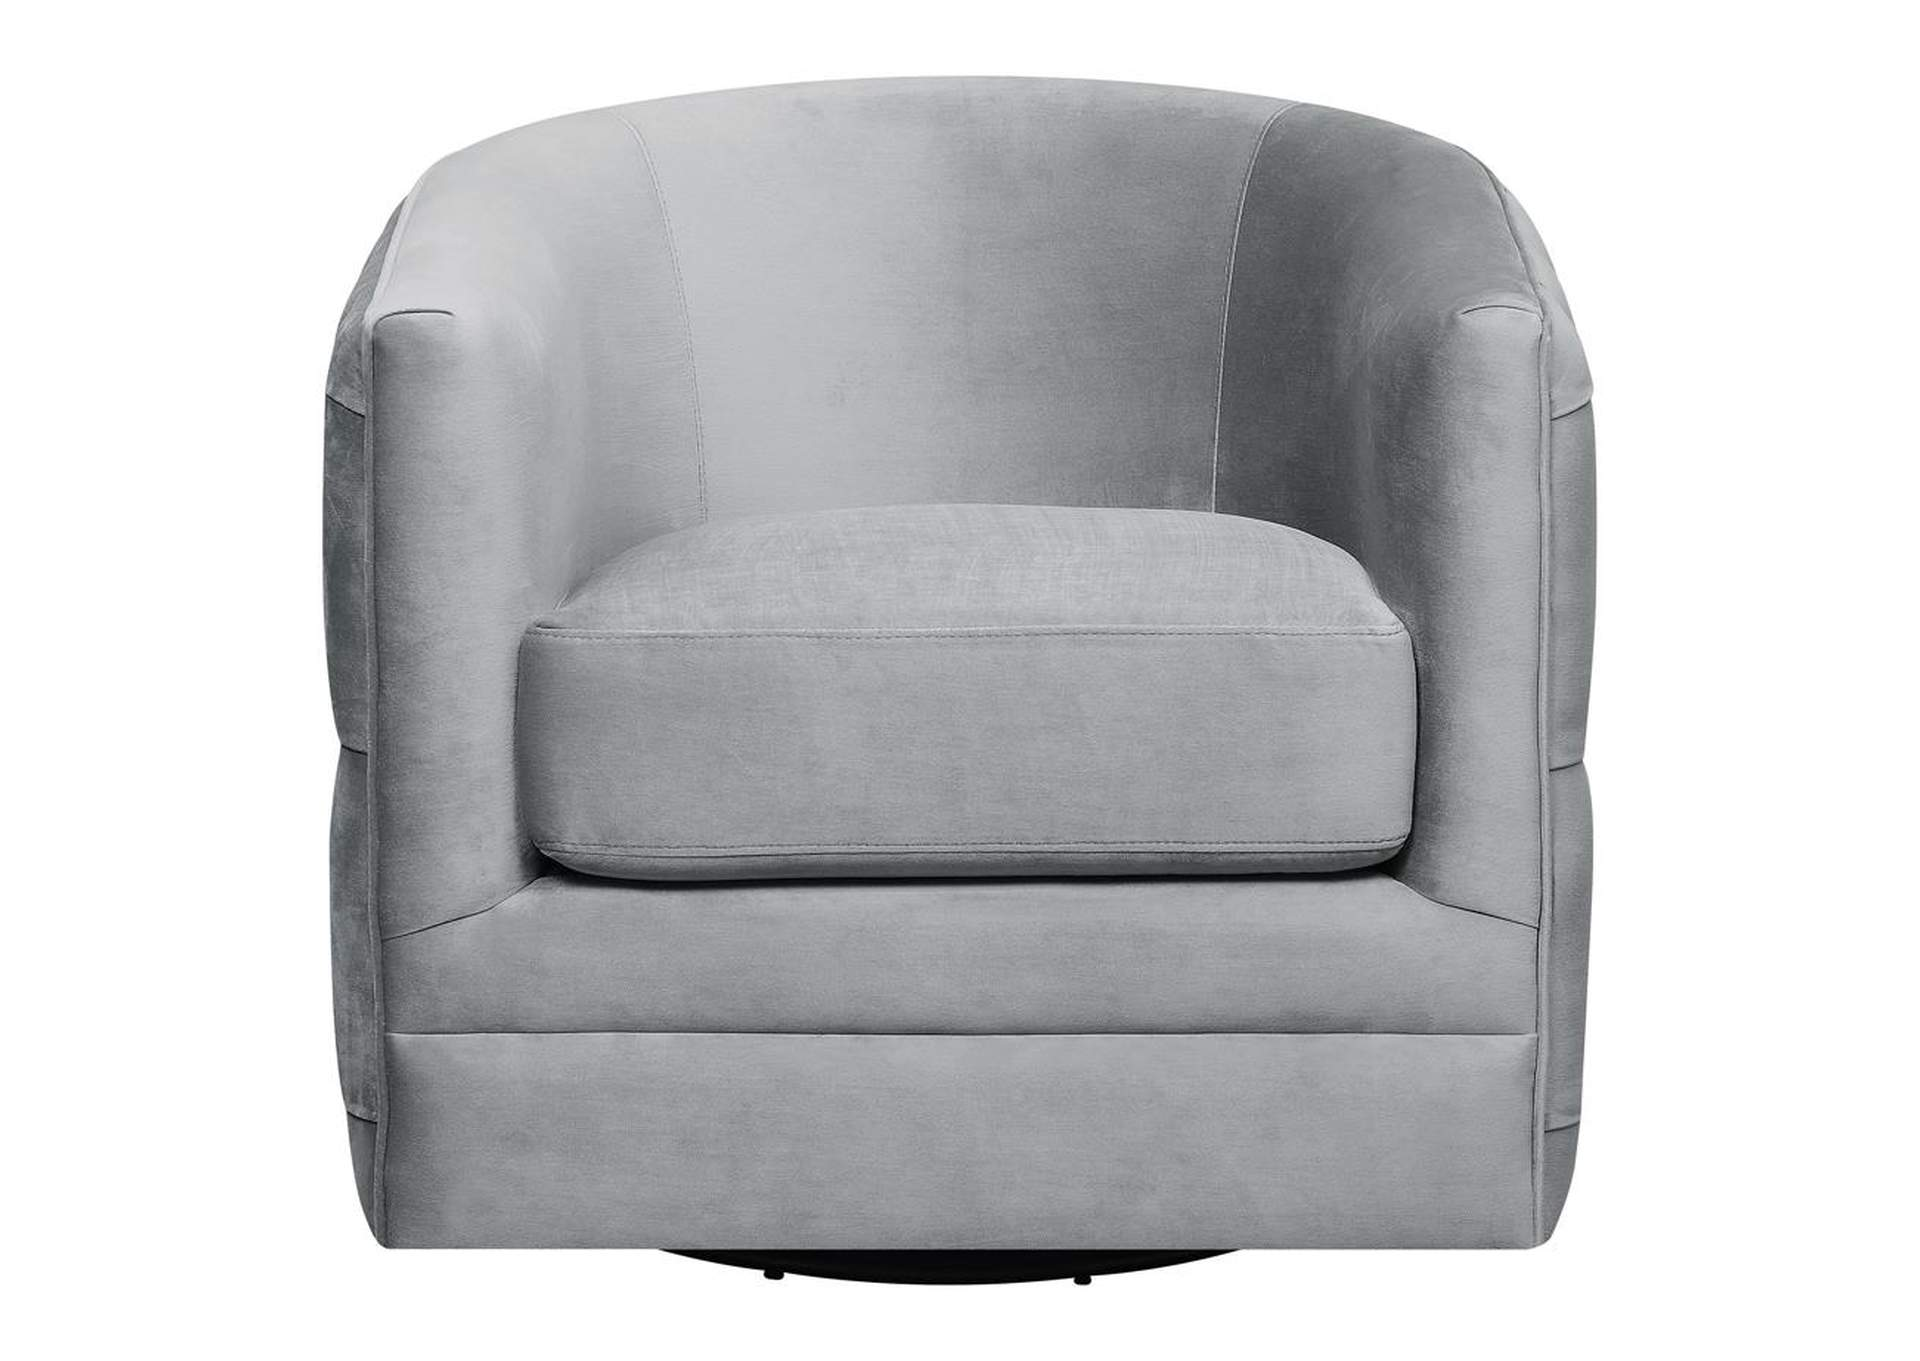 Oslo Gray Modern Grey Swivel Accent Chair,Coaster Furniture